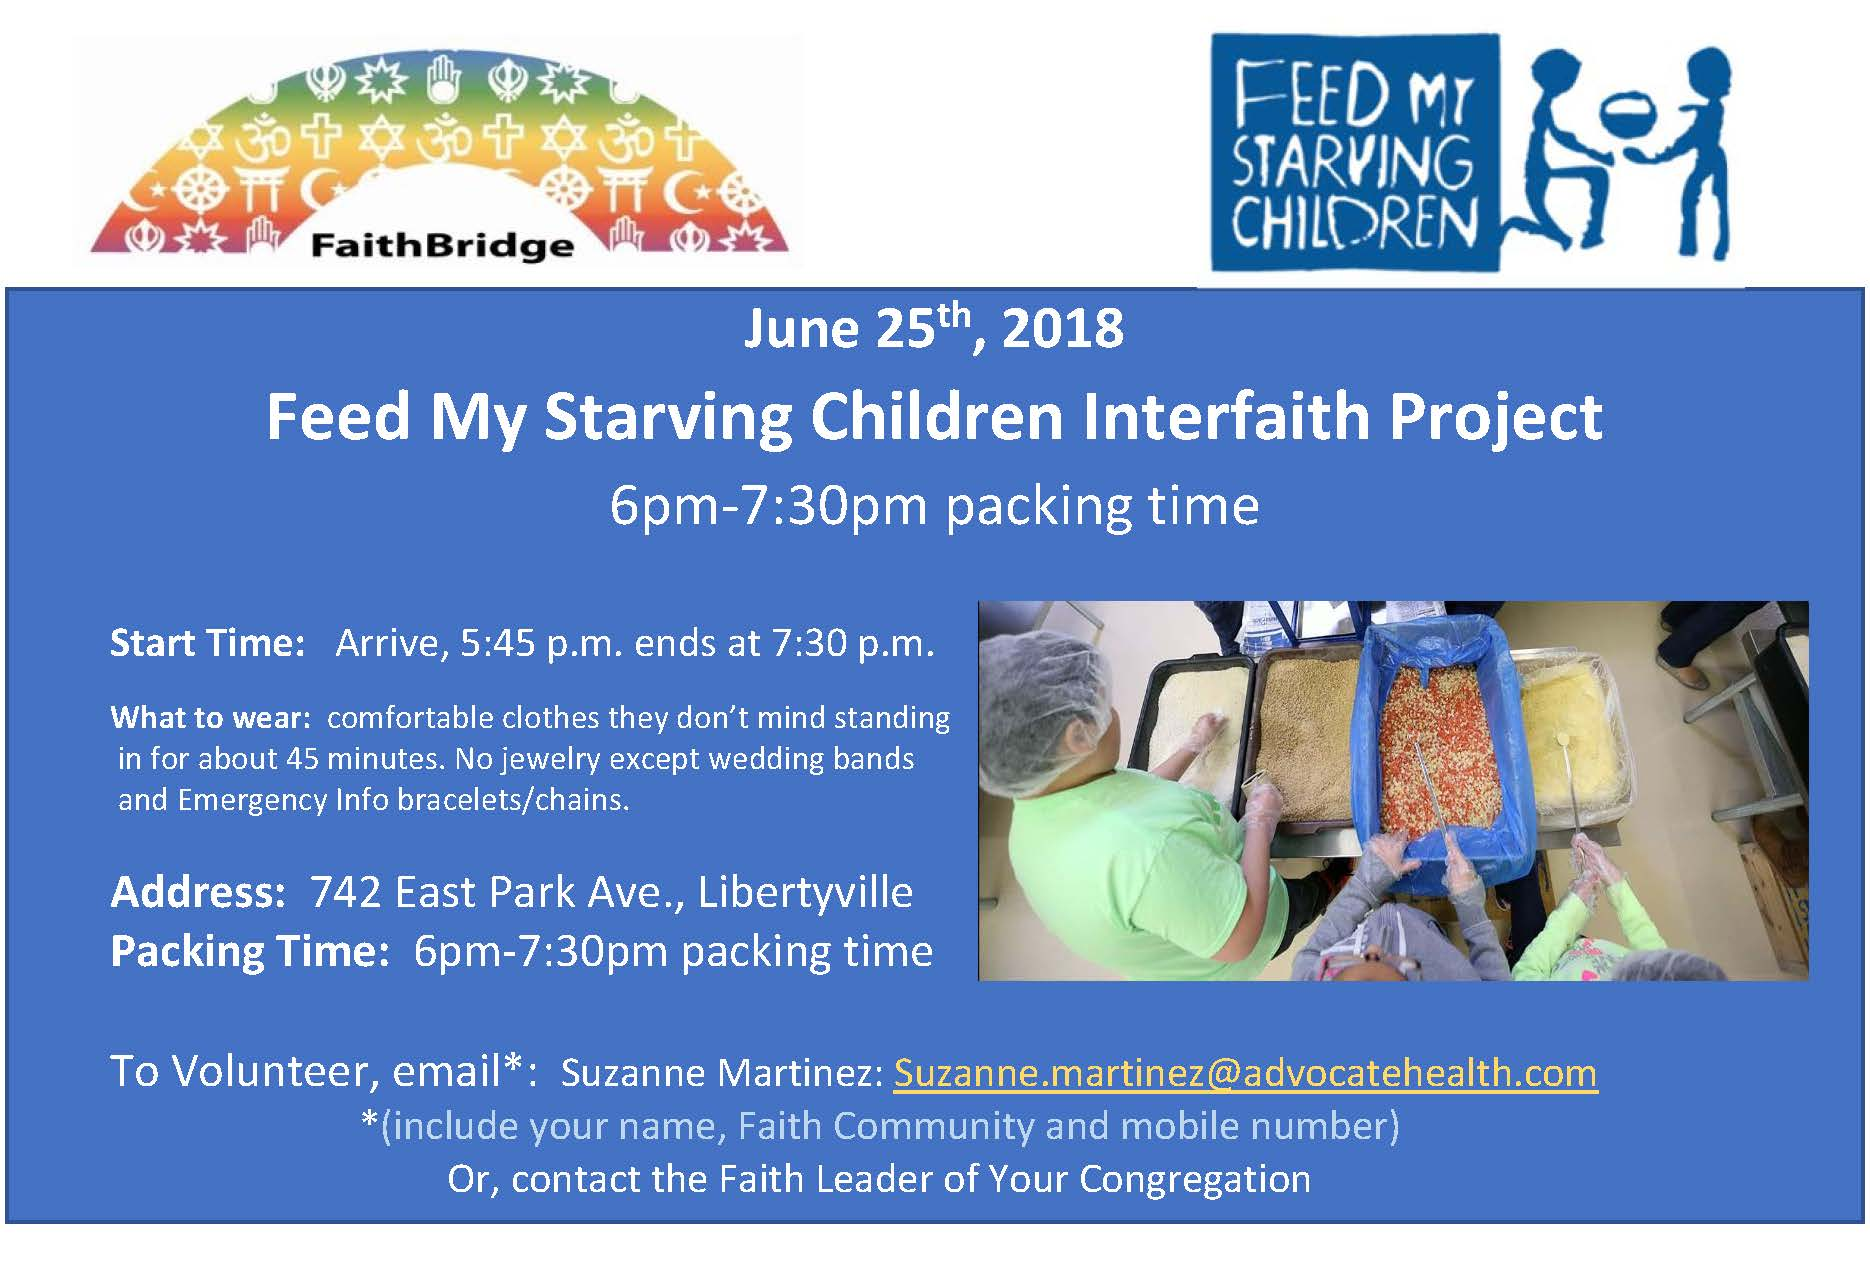 June 25th feed my starving children interfaith project flyer jodjla